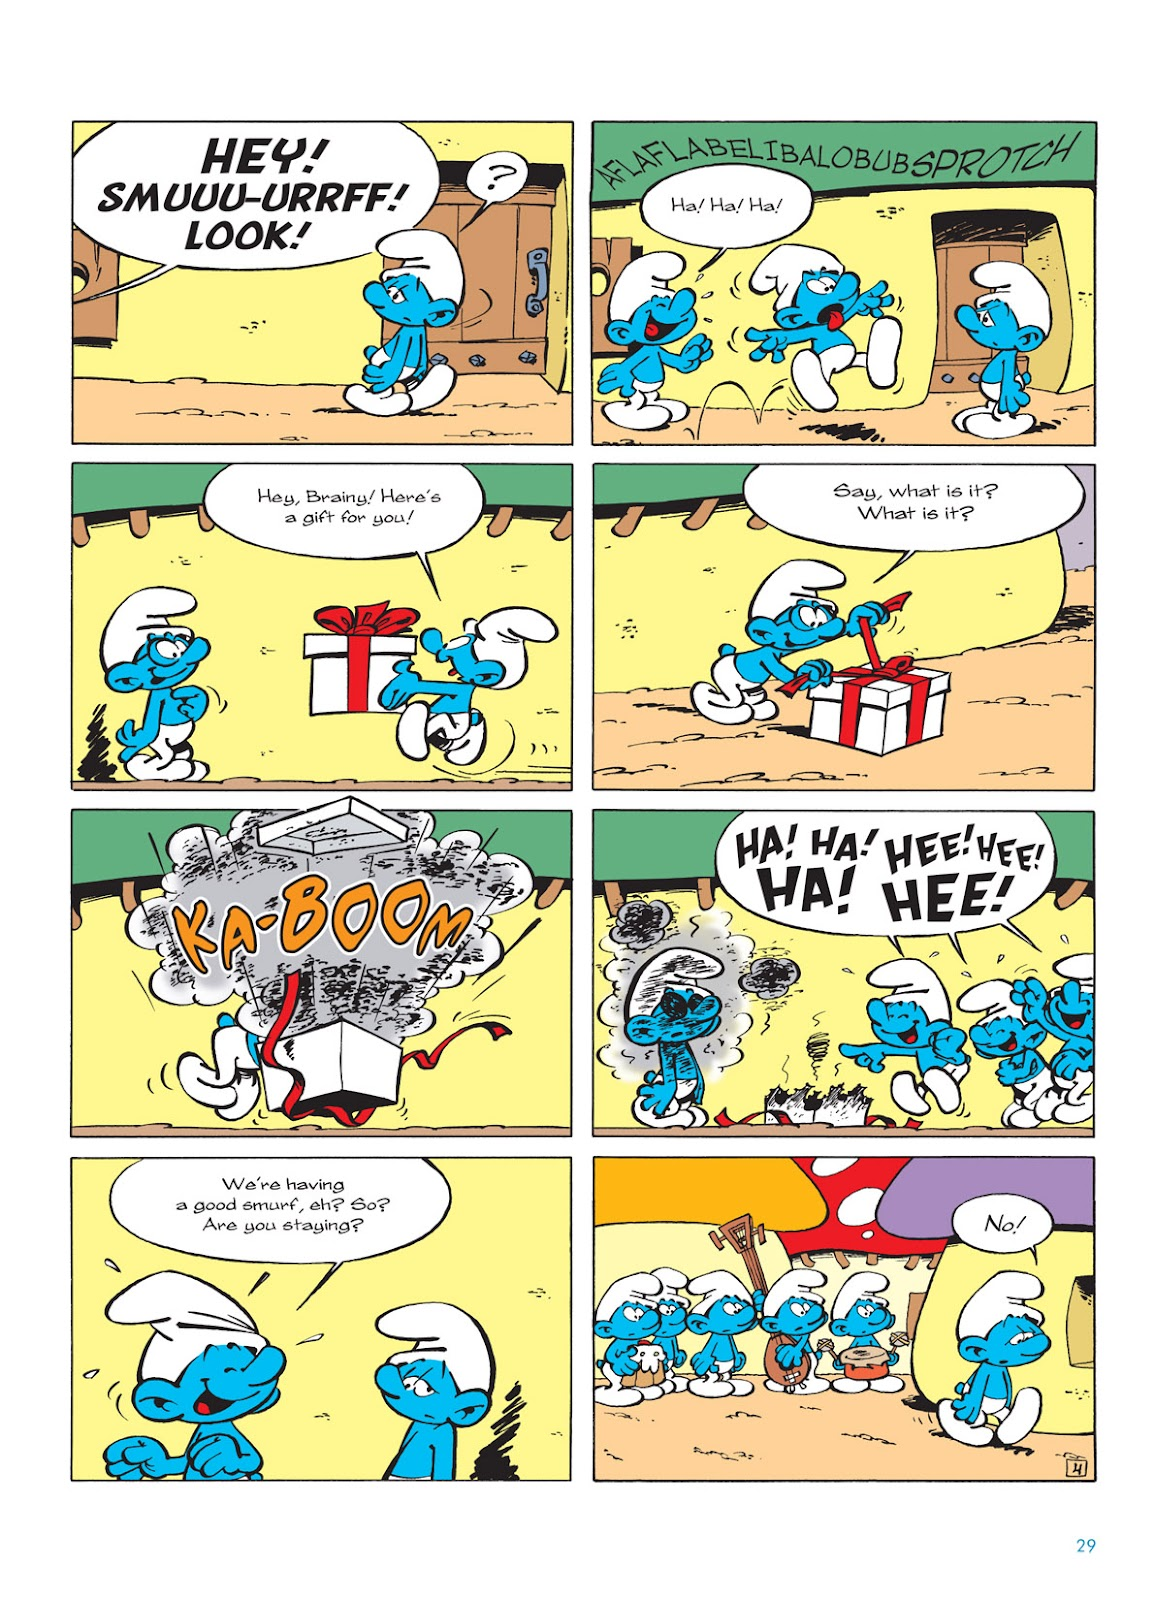 Read online The Smurfs comic -  Issue #9 - 29